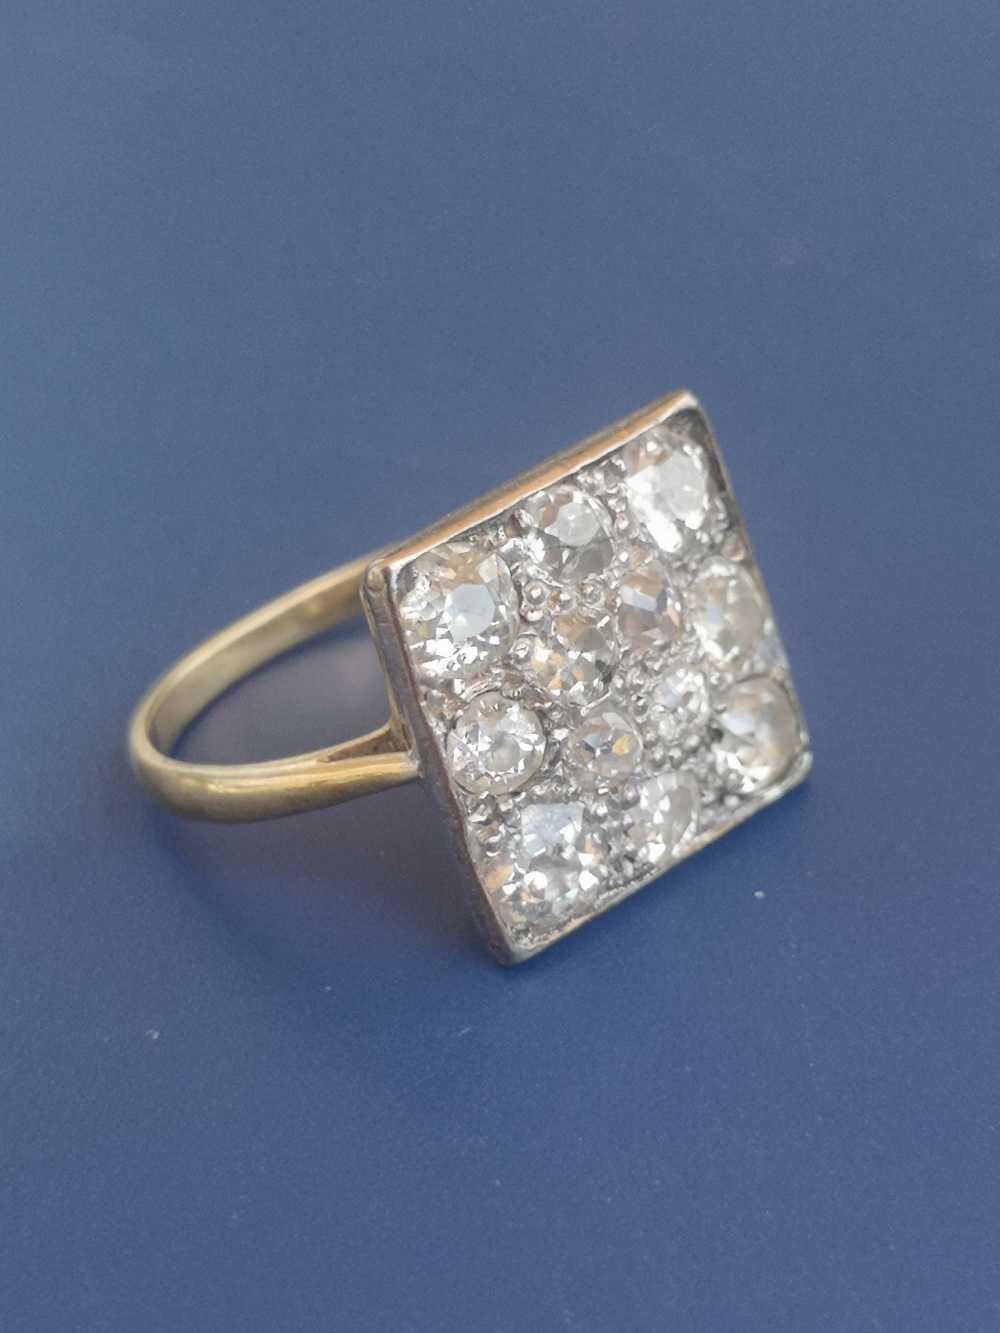 A diamond dress ring having a square pave setting on yellow metal shank. Finger size L. - Image 3 of 5